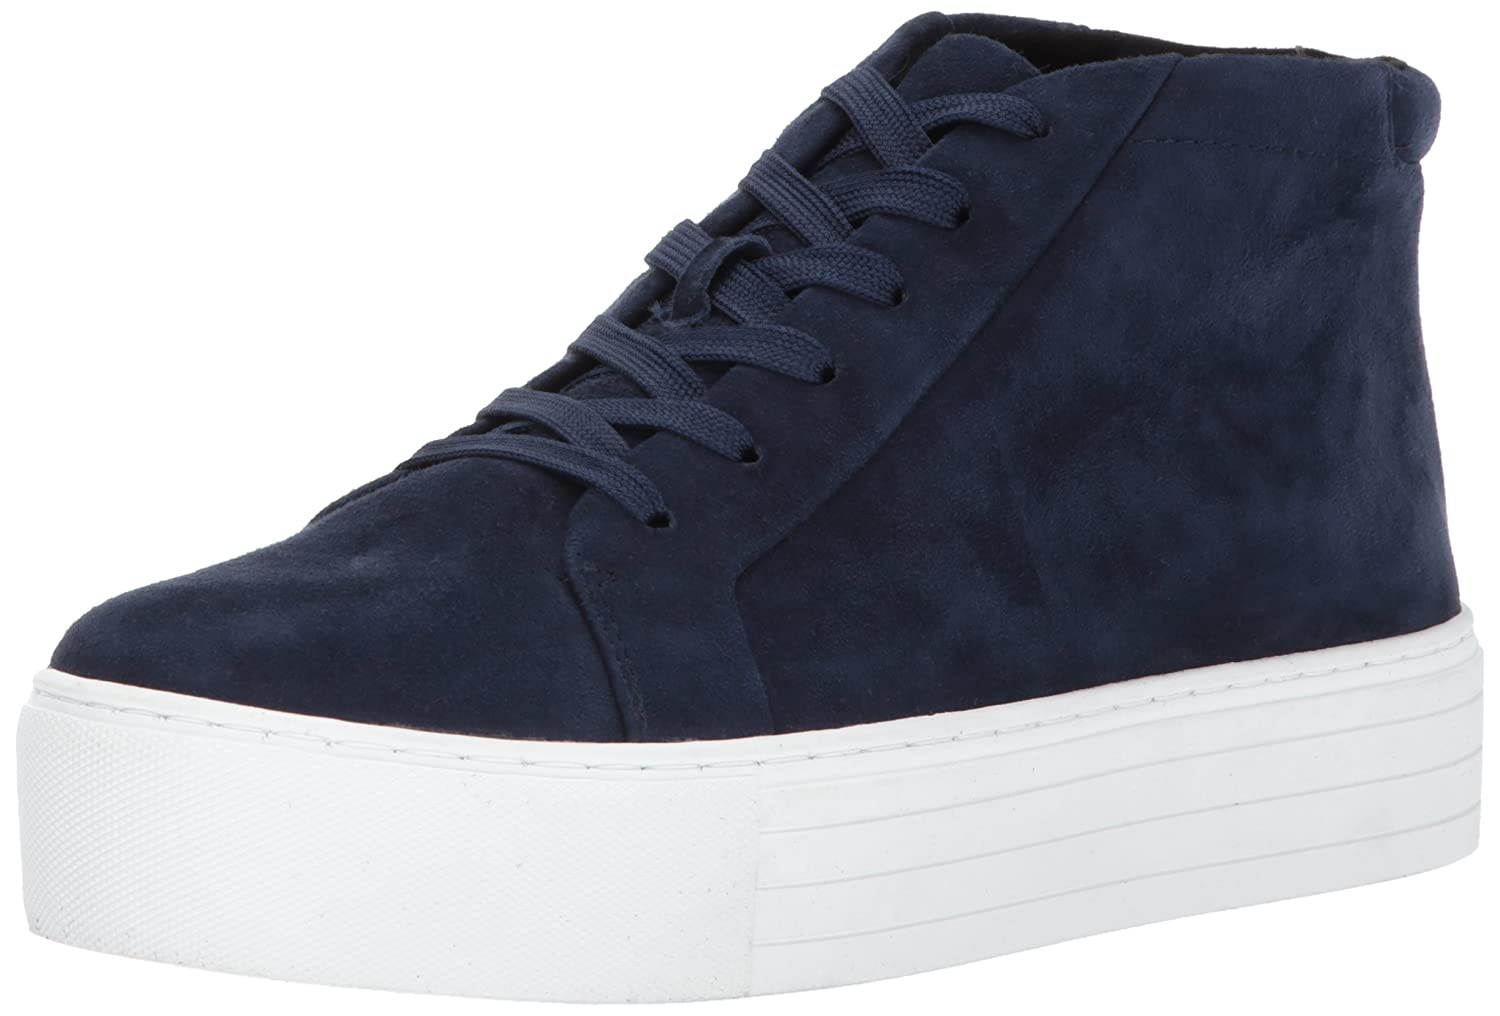 Kenneth Cole New York Women's Janette High Top Lace up Platform Patent Fashion Sneaker B06ZY24LML 9 M US|Navy